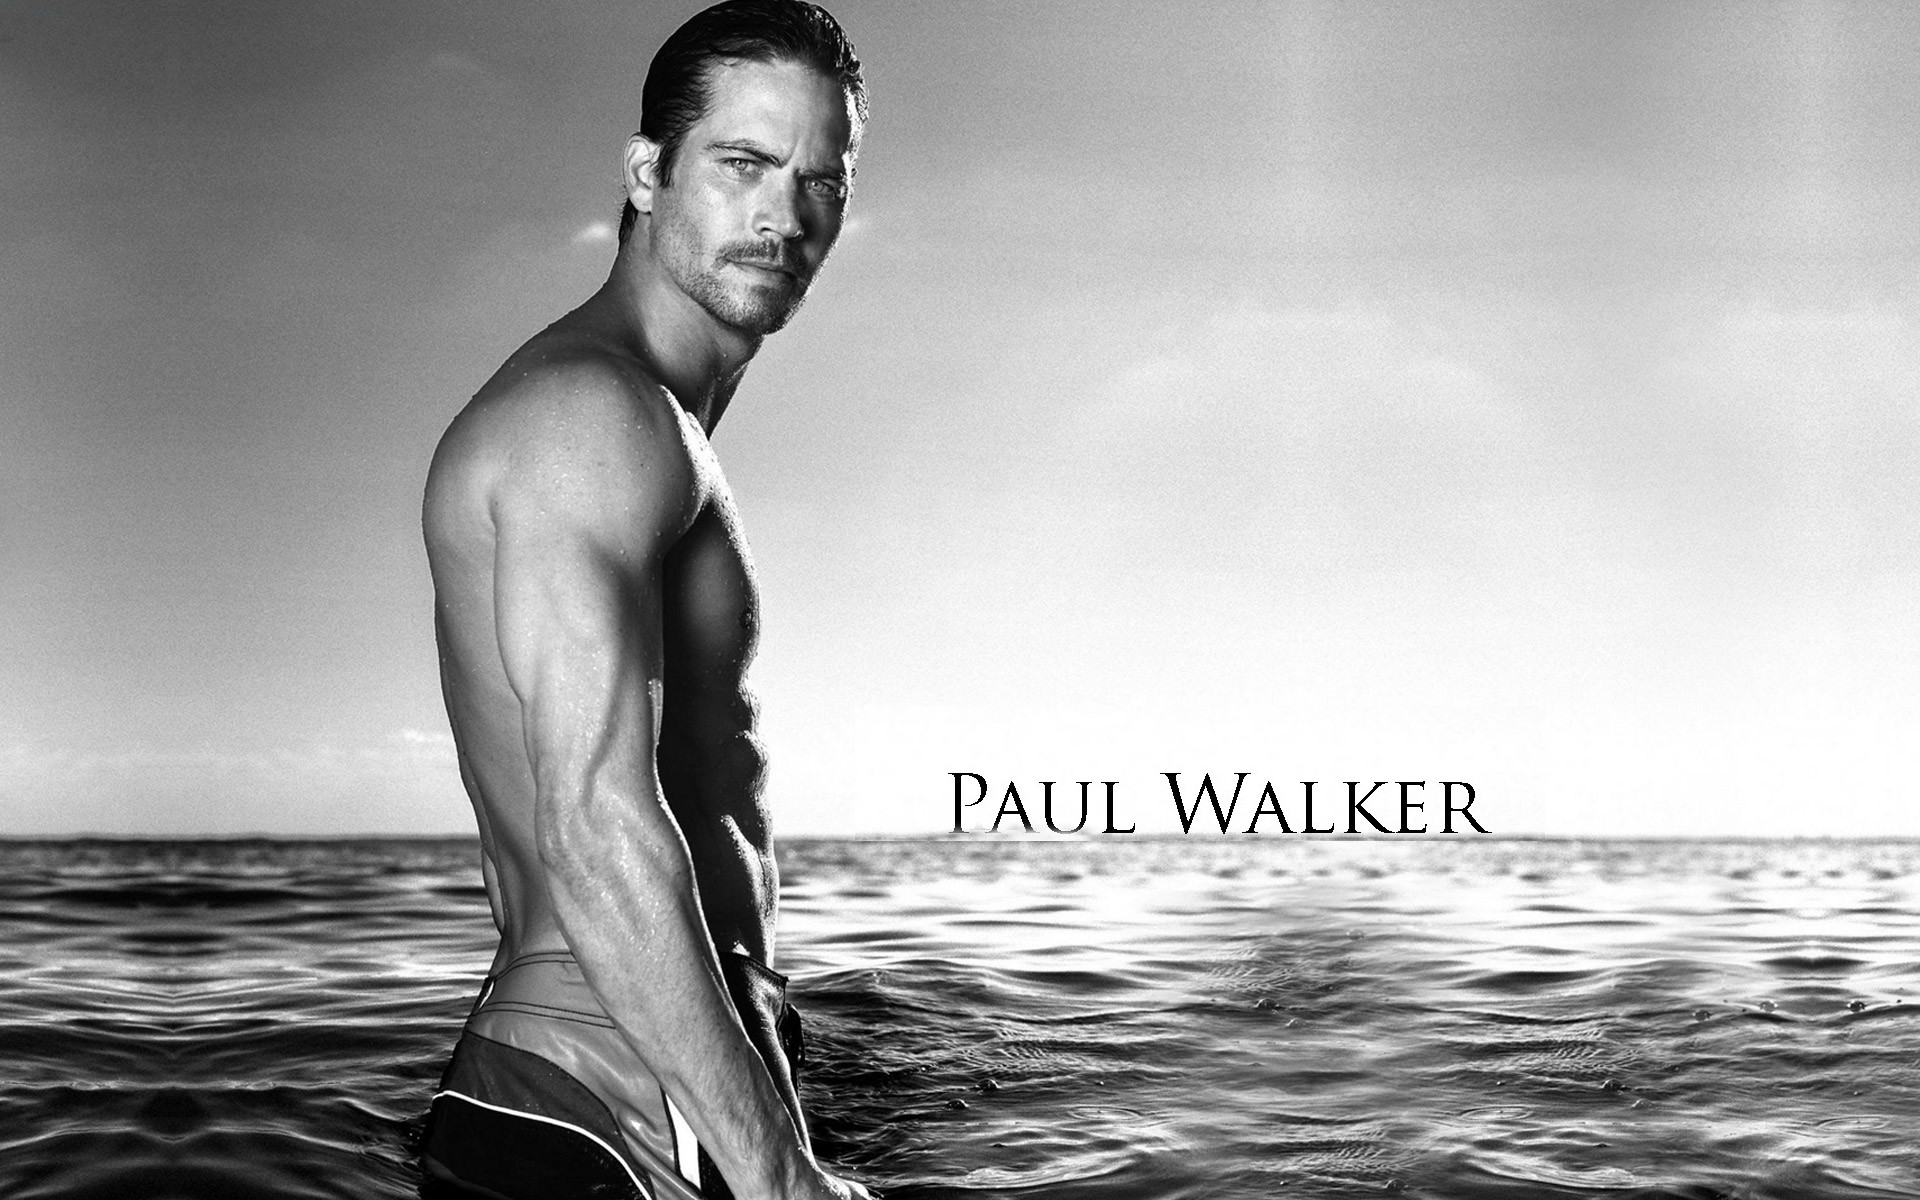 Paul Walker Wallpaper Hd 75 Images